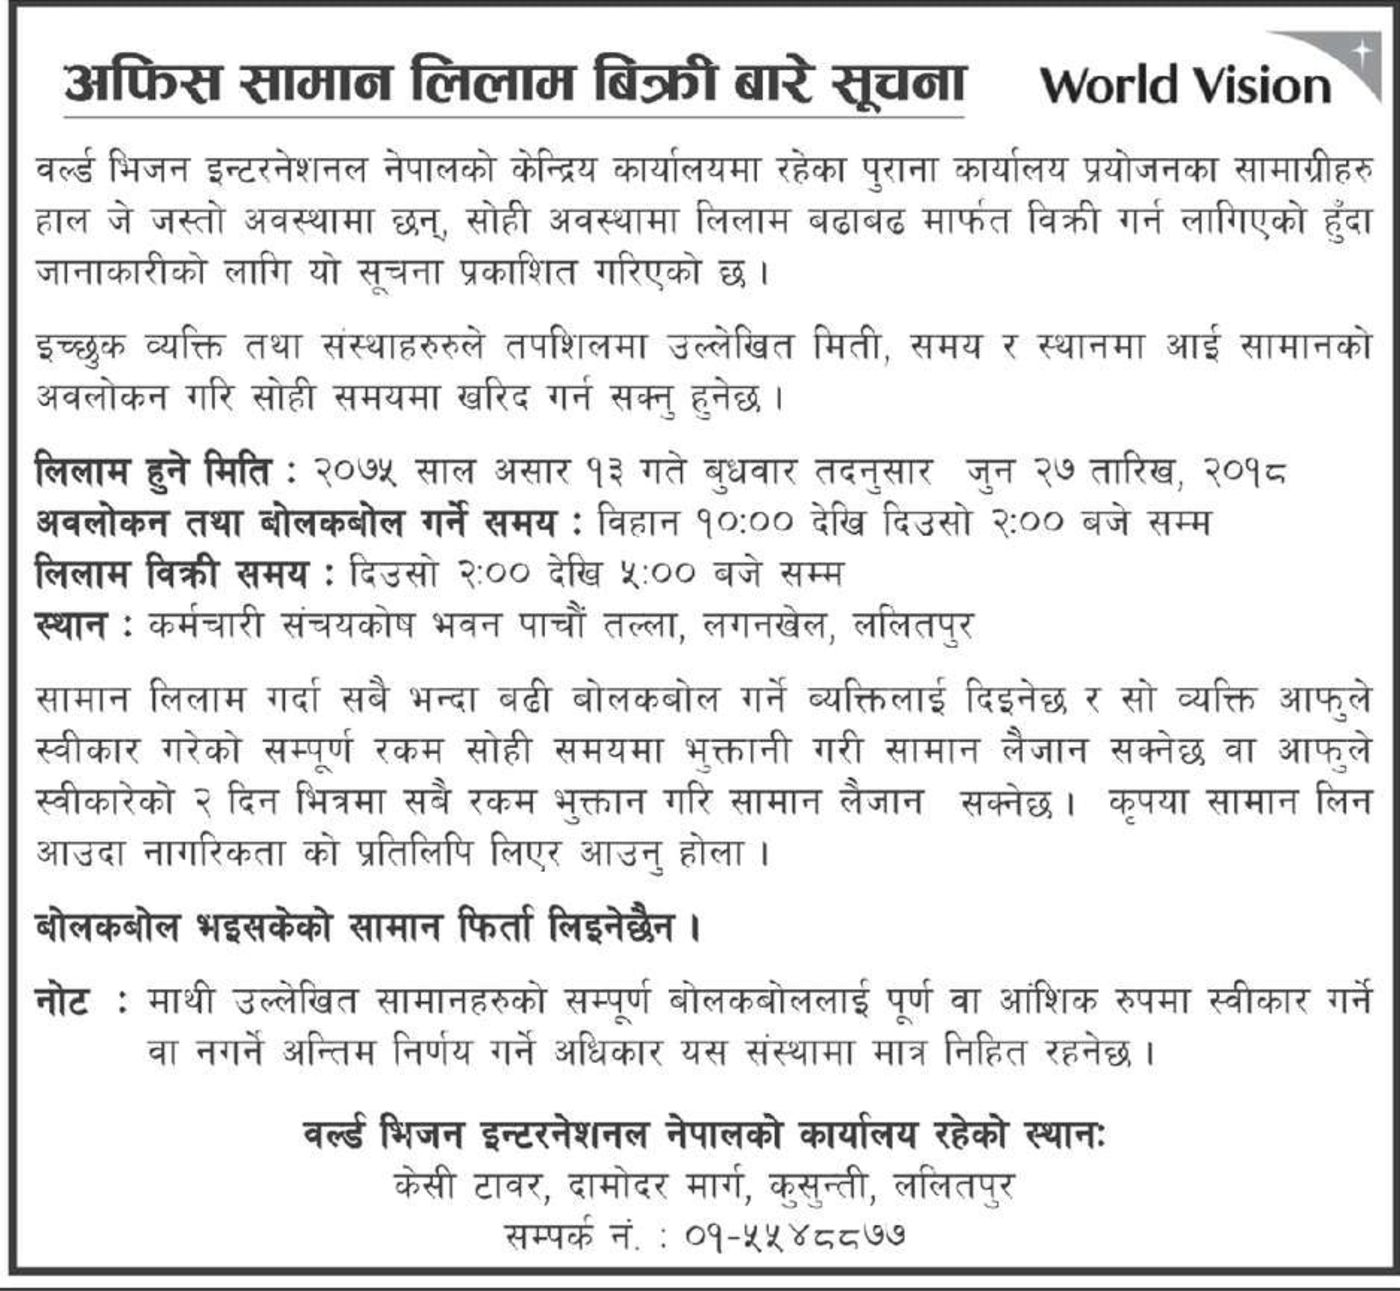 Bids and Tenders Nepal - Auction Sale - Office Goods - ( Bids )